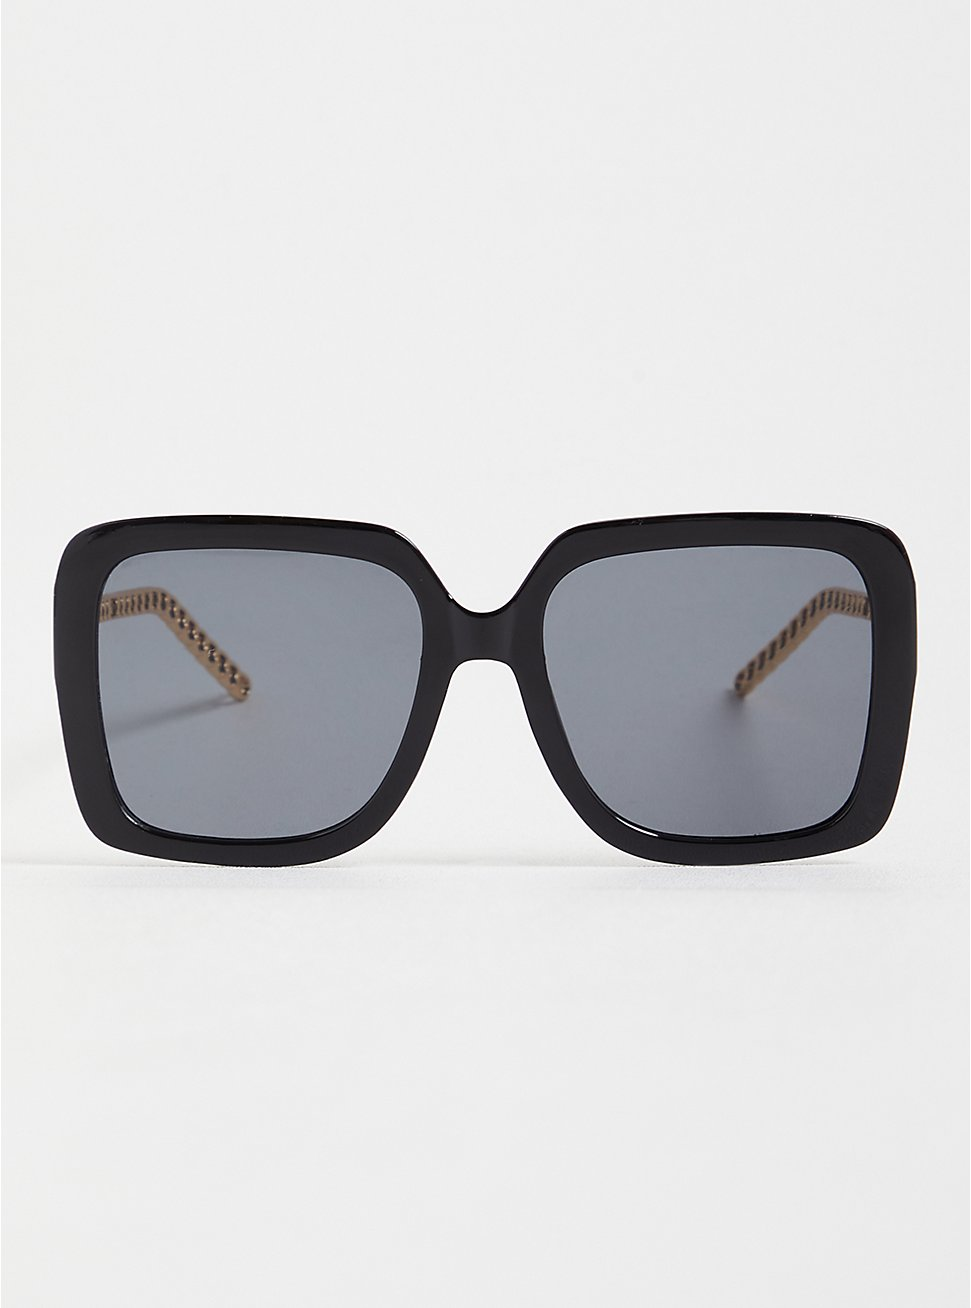 Black Square Oversized Sunglasses With Link Detail , , hi-res